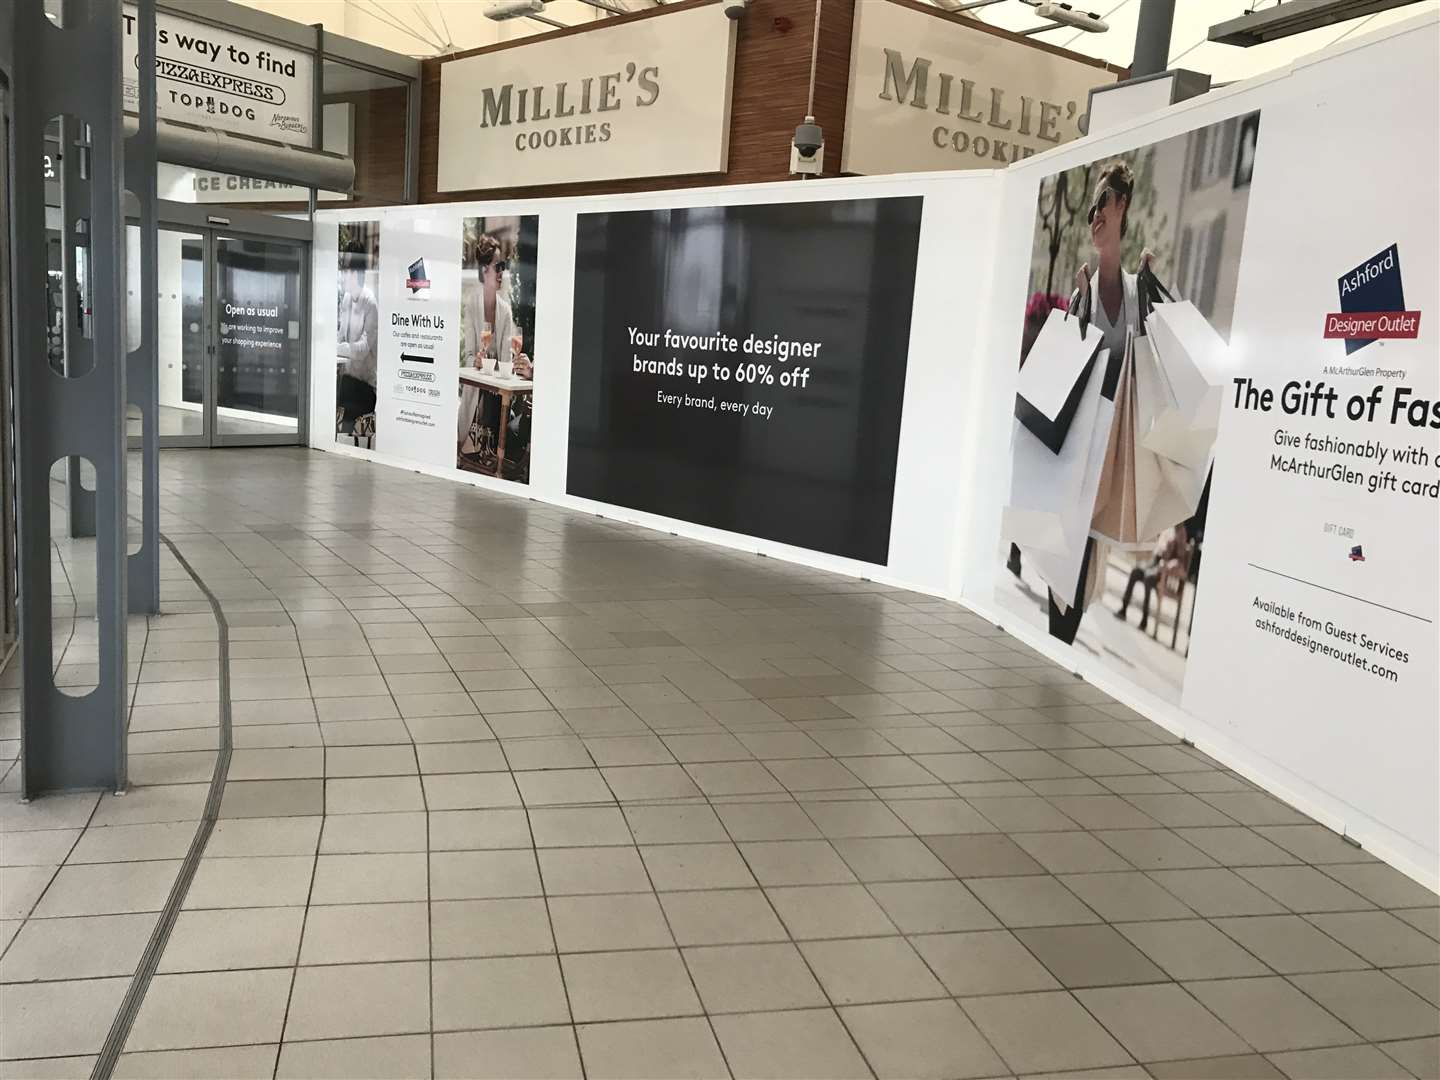 The Outlet's former food court is now closed as work begins on the extension